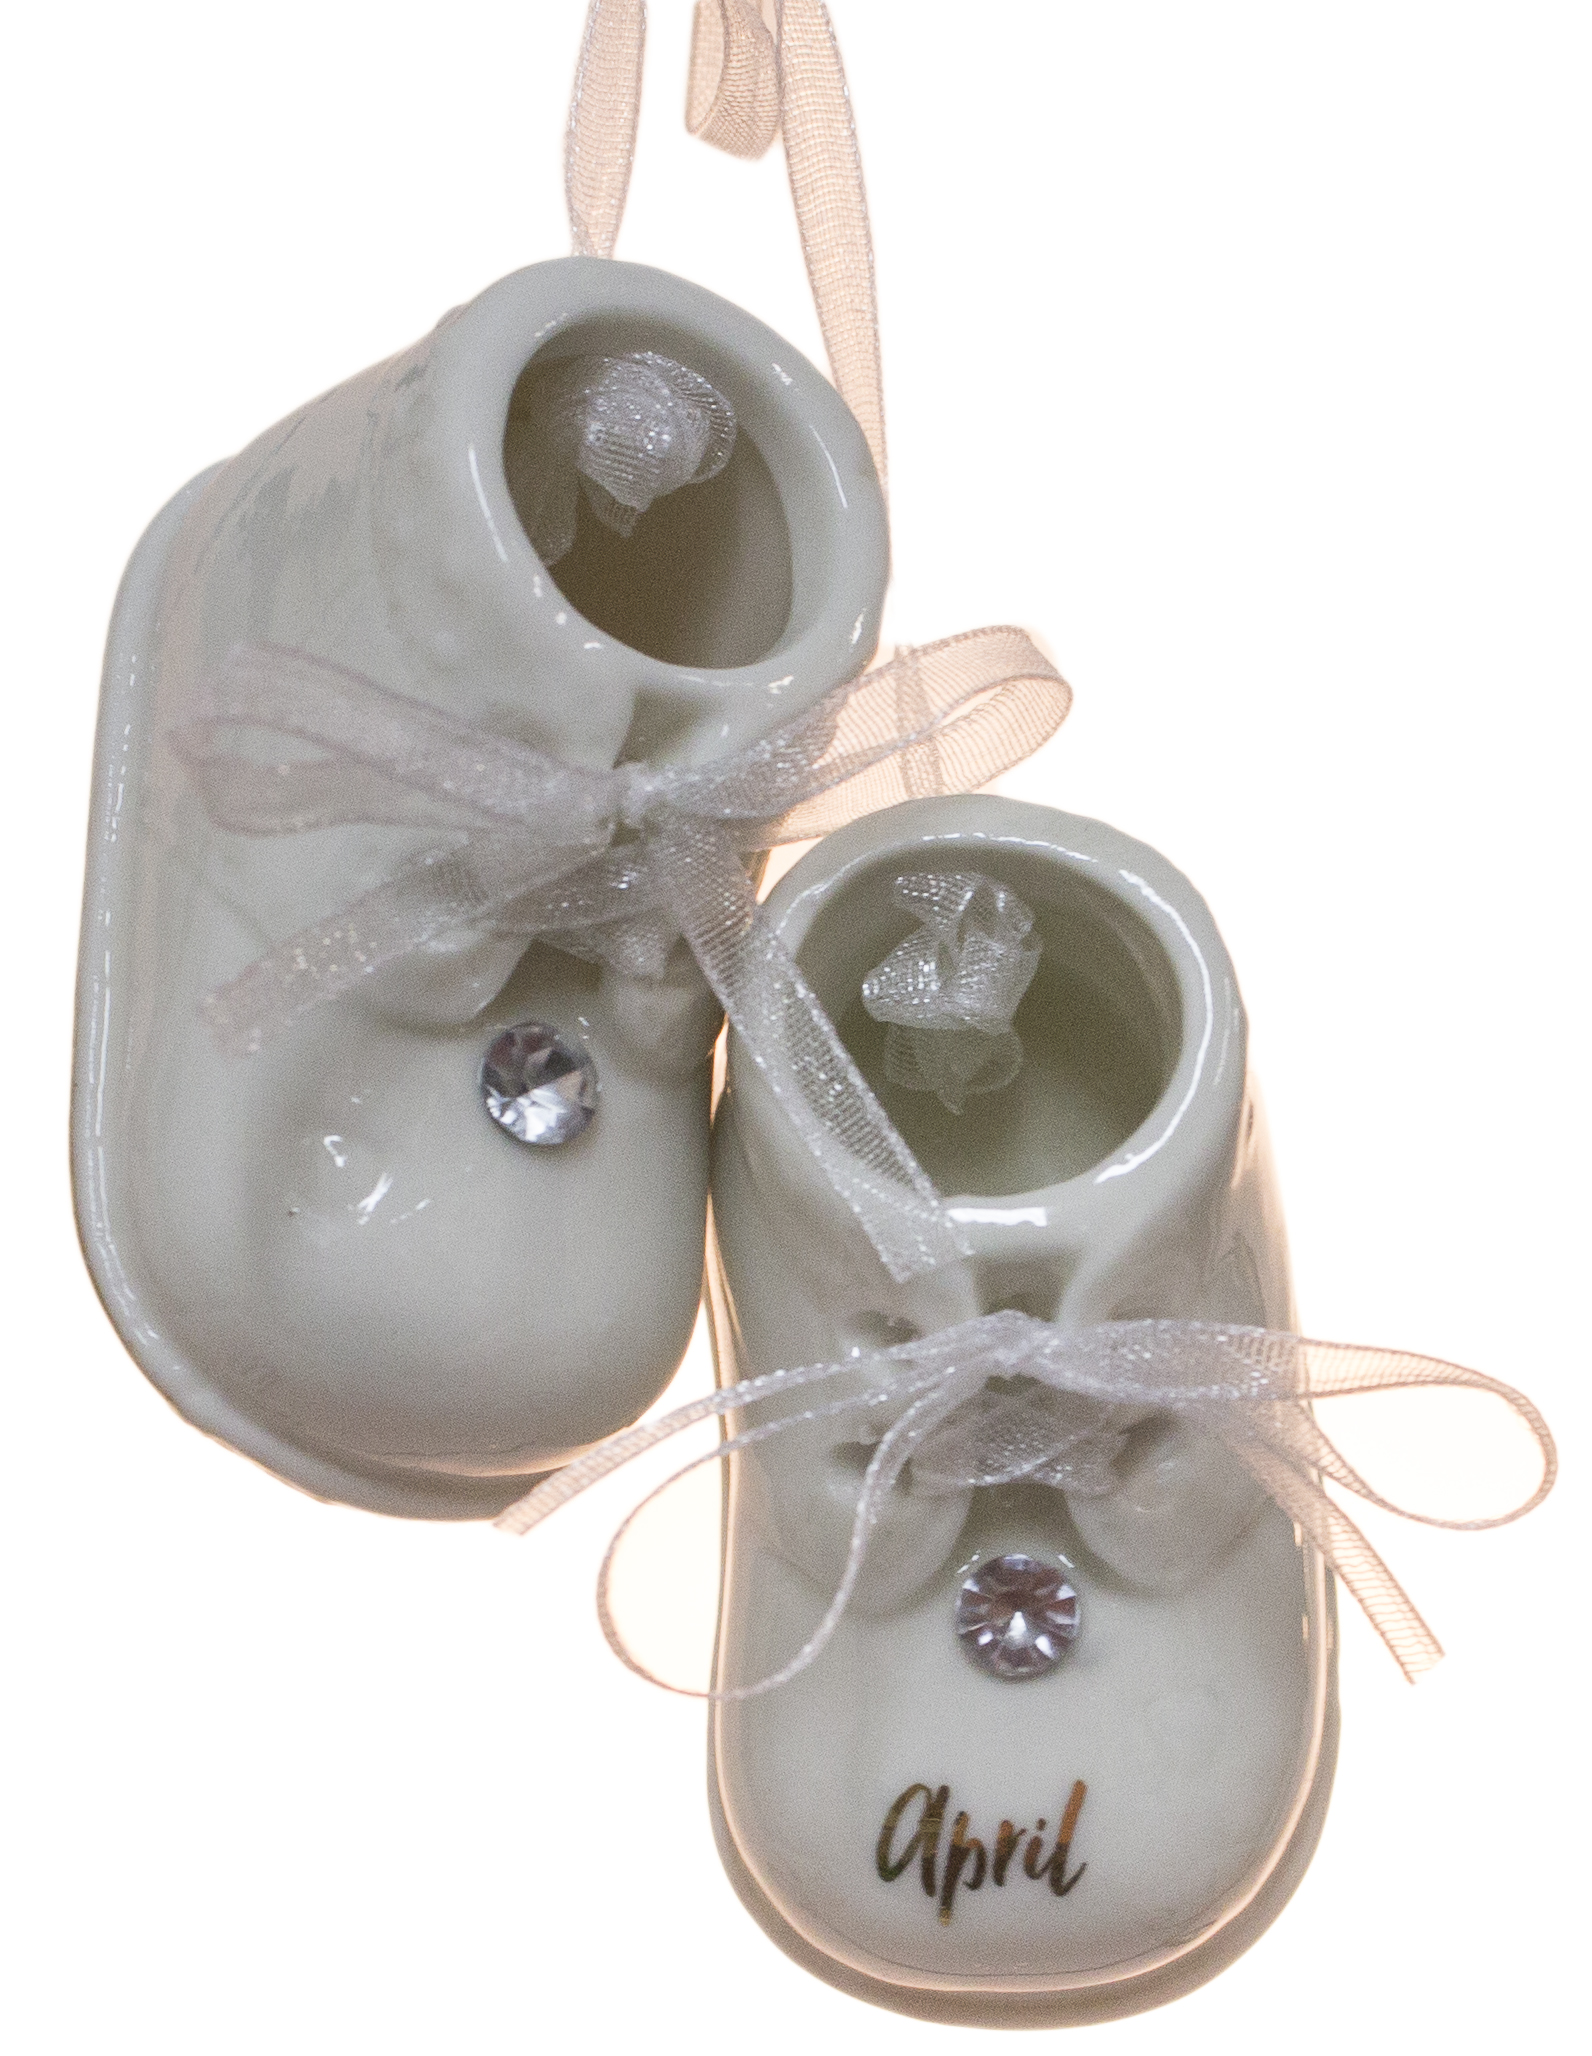 April Birthstone Baby Booties Porcelain Ornament